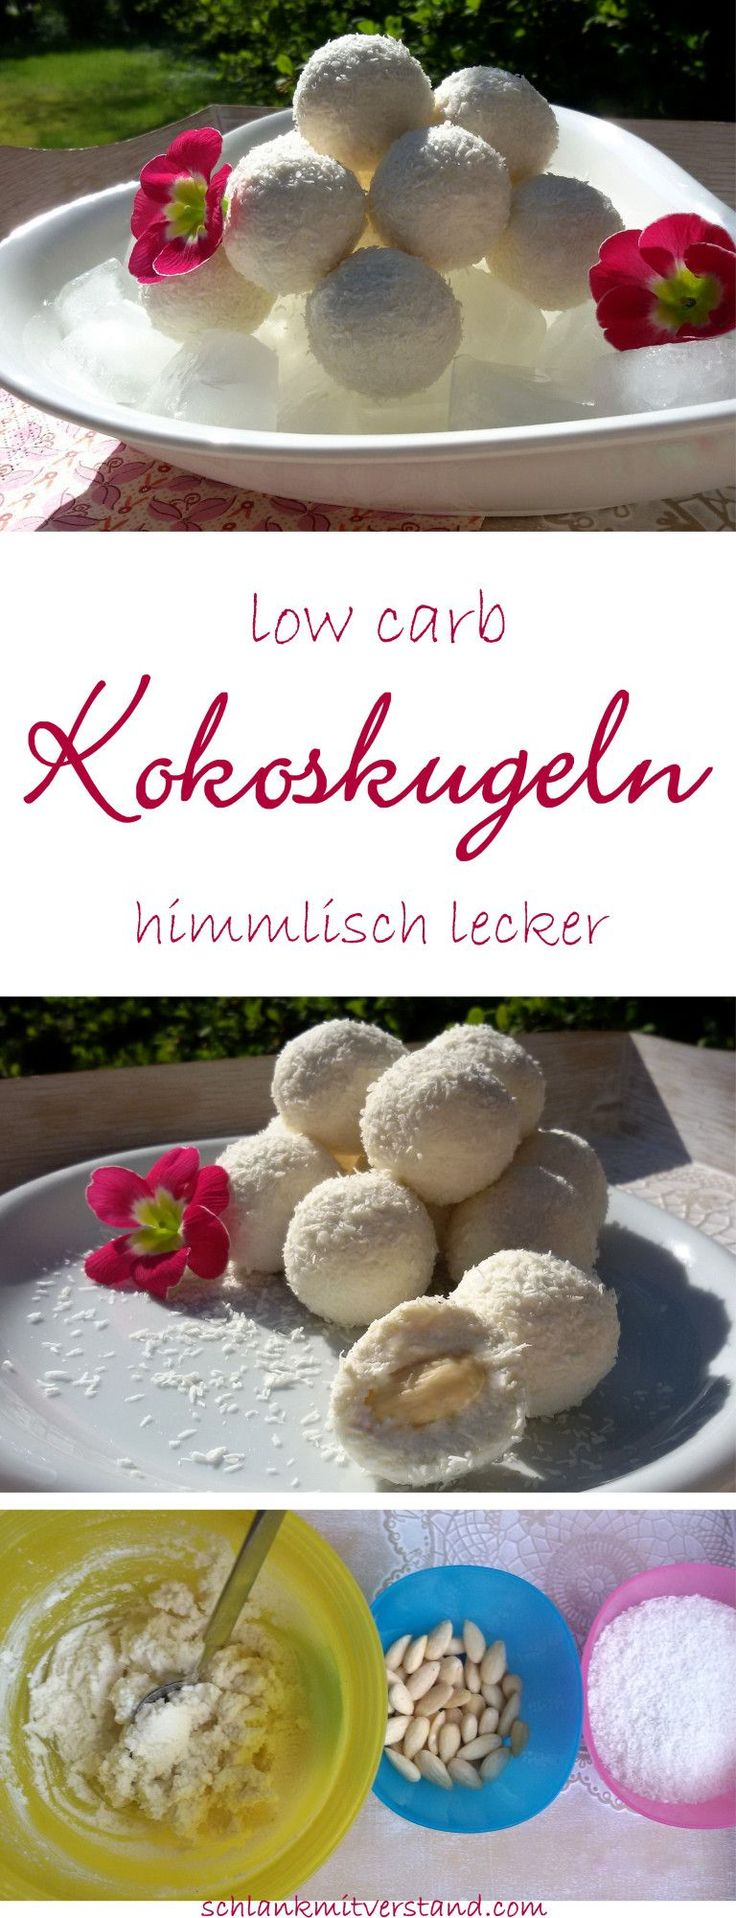 Kokoskugeln low carb (Vegan Recipes Low Carb)